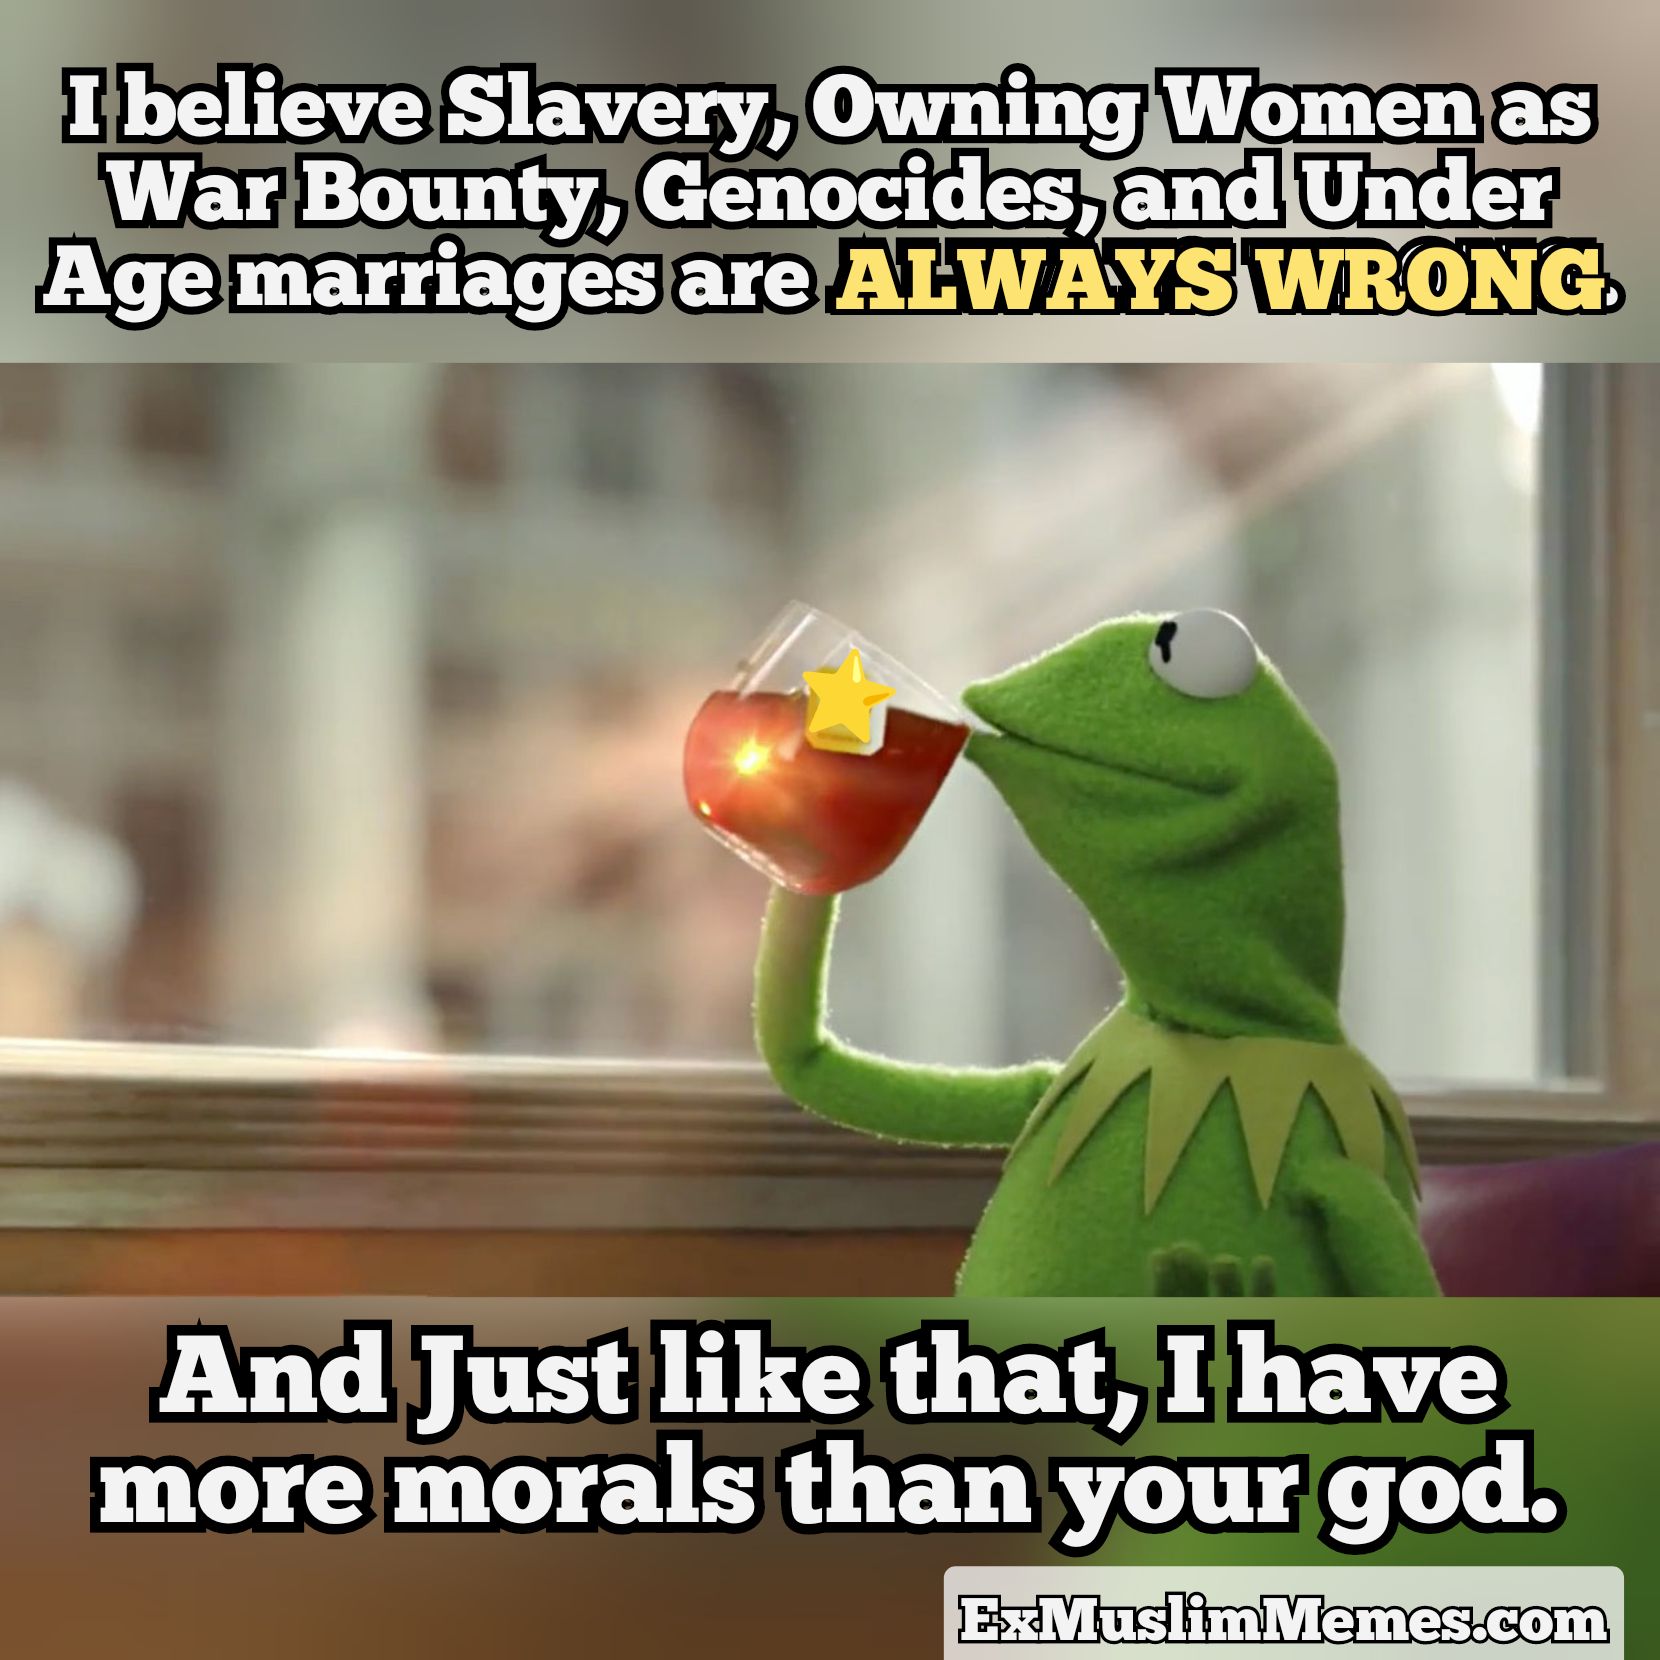 Slavery women wrong all the time on morality